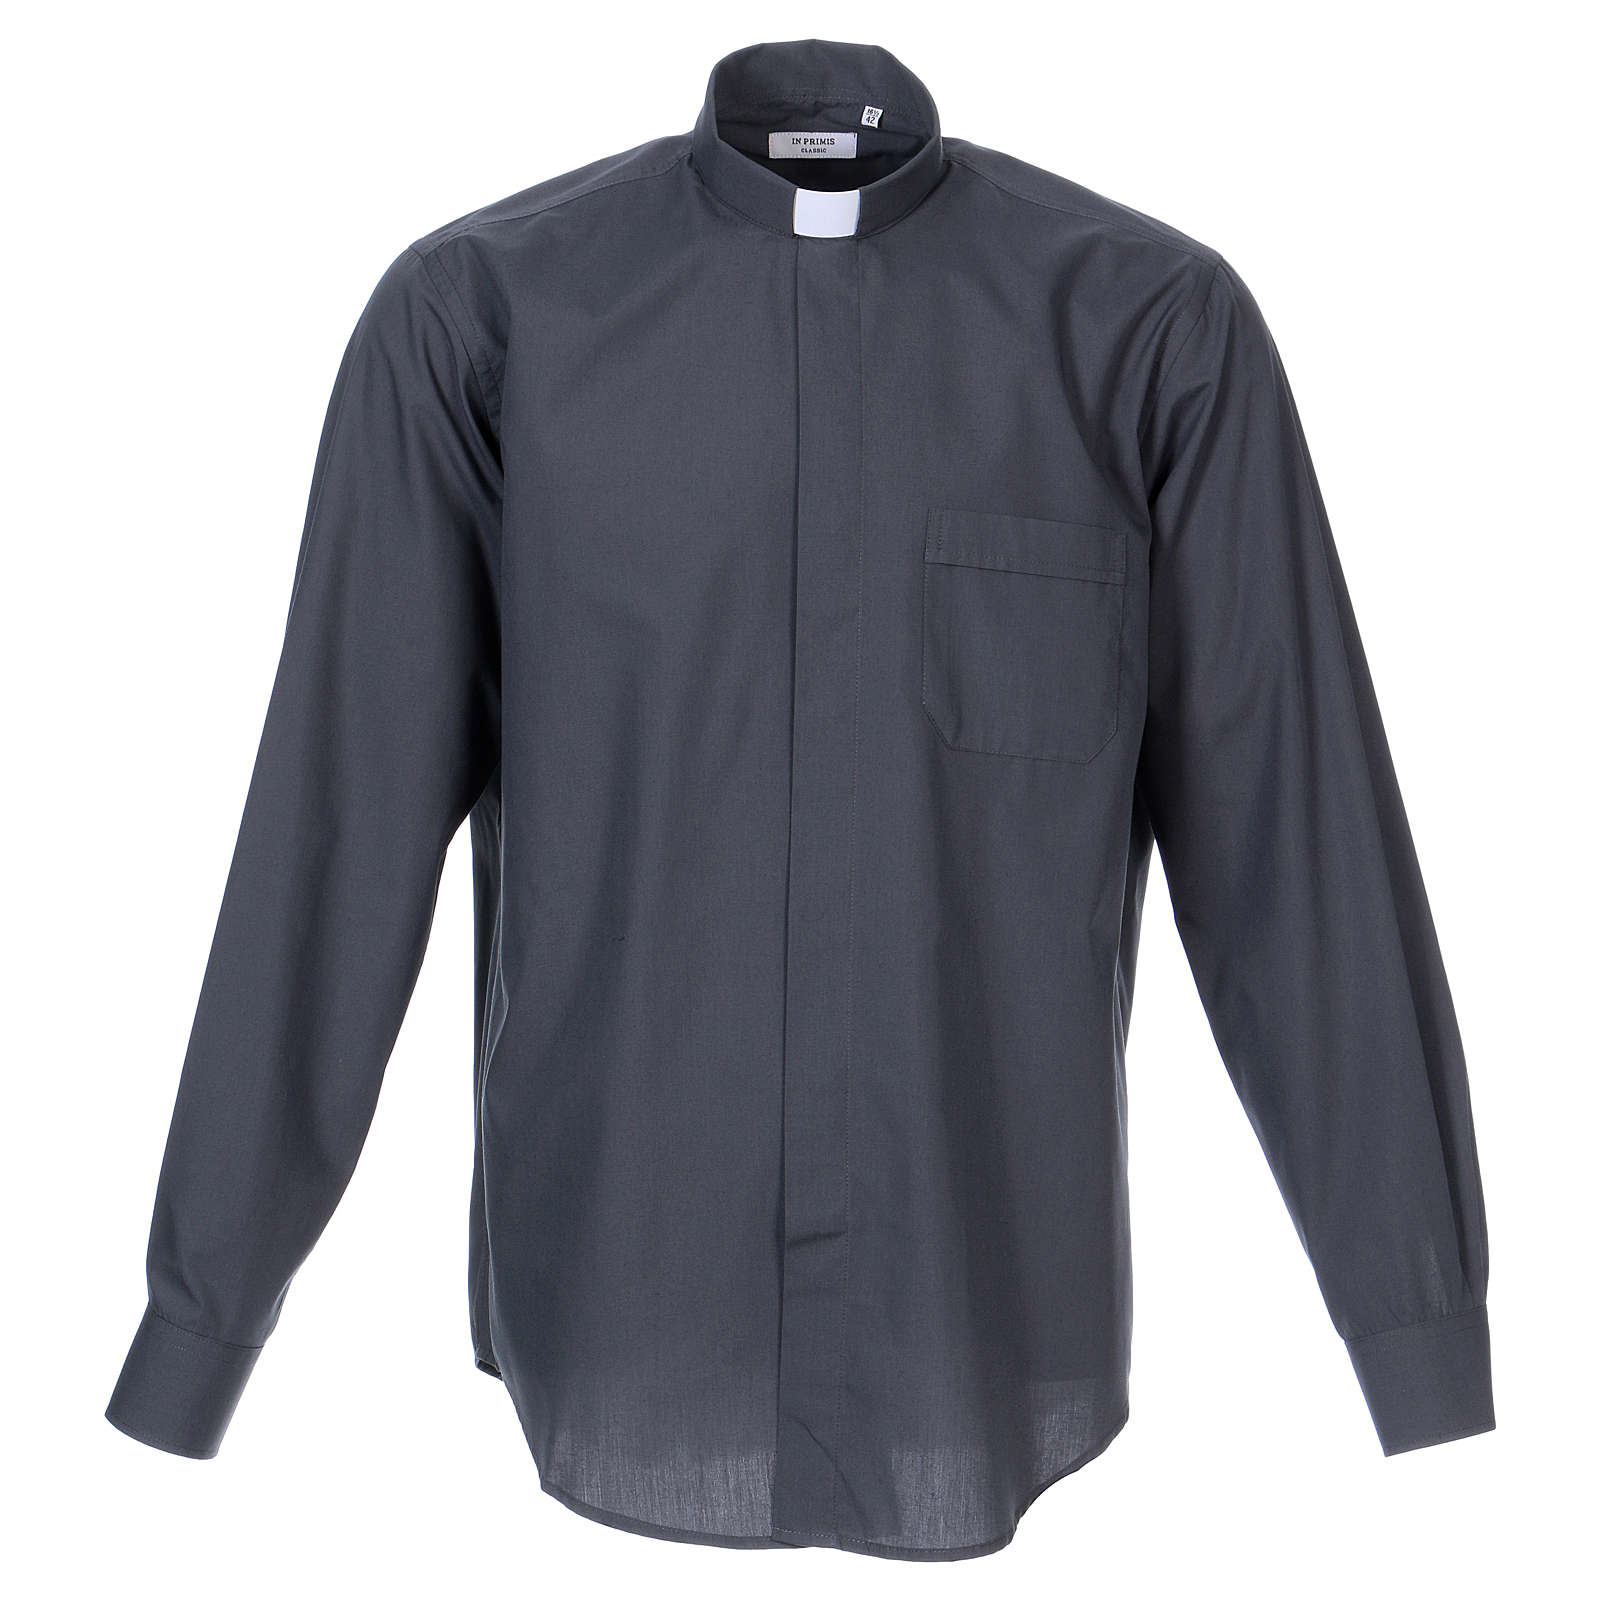 Long Sleeve Clergy Shirt in Dark Gray, mixed cotton In Primis 4